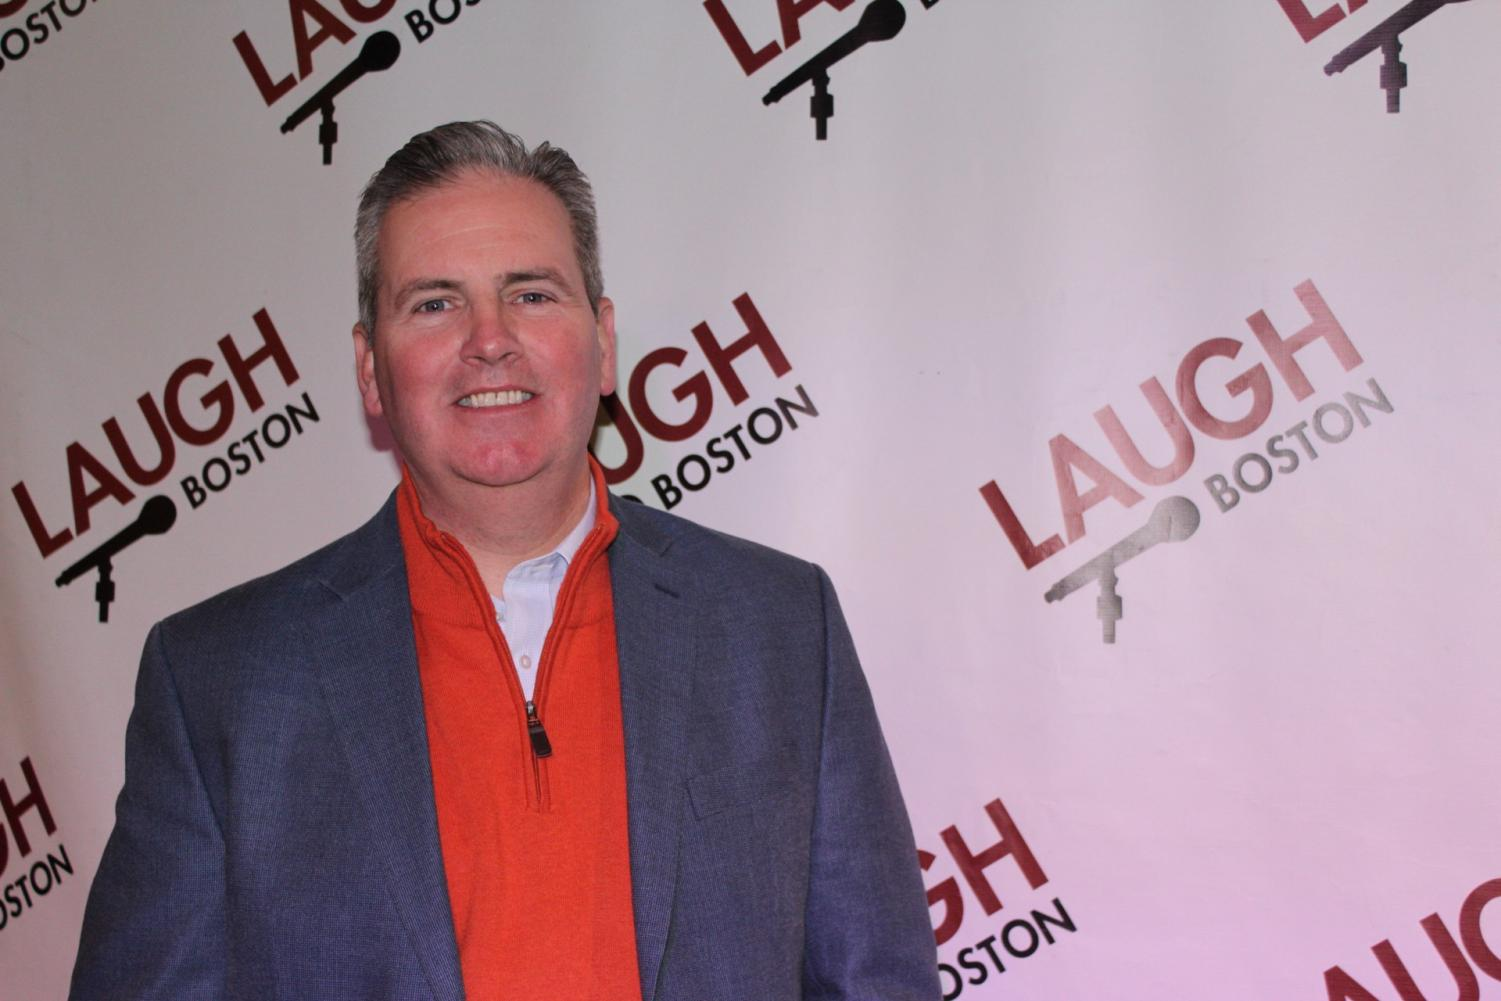 John Tobin at his venue Laugh Boston. Apart from owning comedy clubs, Tobin served on the city council and is Northeastern's VP of city and community affairs.